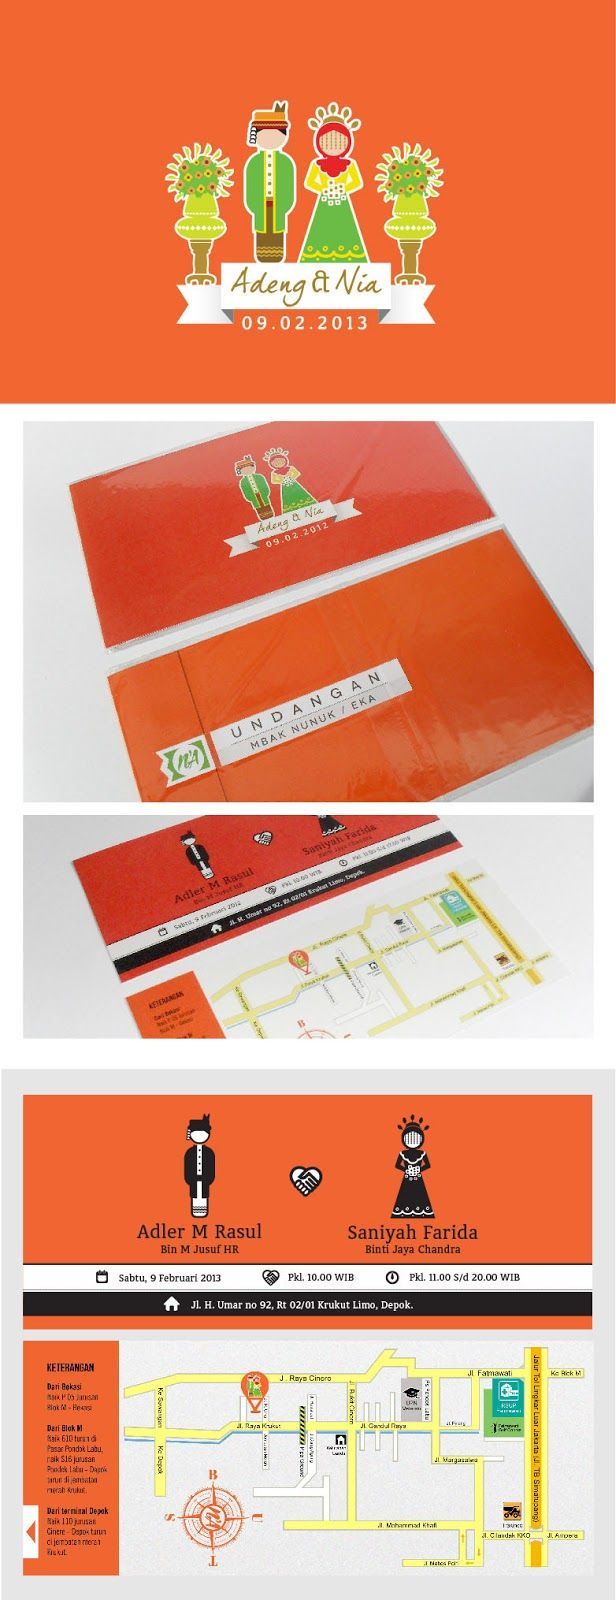 betawi wedding invitation | dsgn | Pinterest | Weddings and Wedding